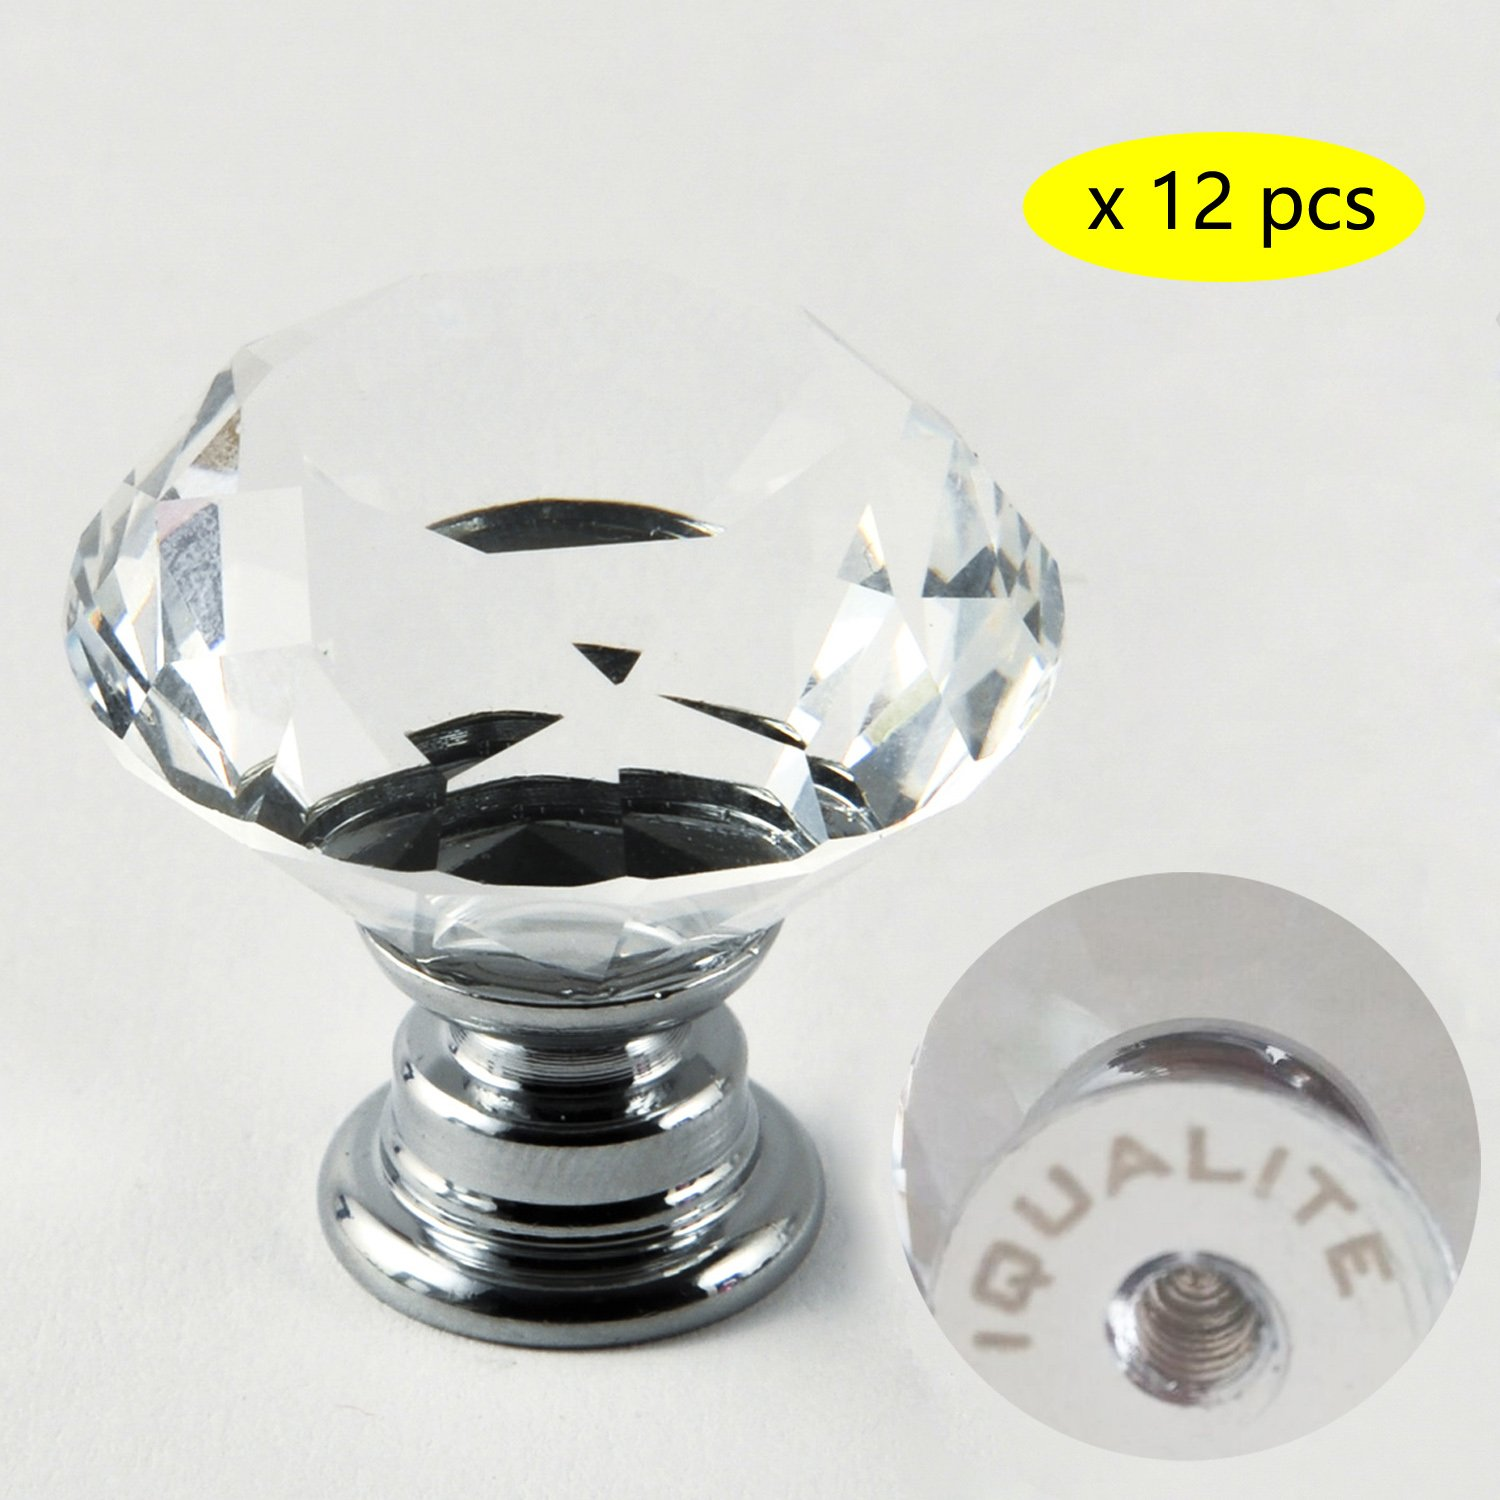 IQUALITE 12pcs Diamond Shape Crystal Glass 30mm Drawer Knob Pull Handle Usd for Caebinet, Drawer by IQUALITE